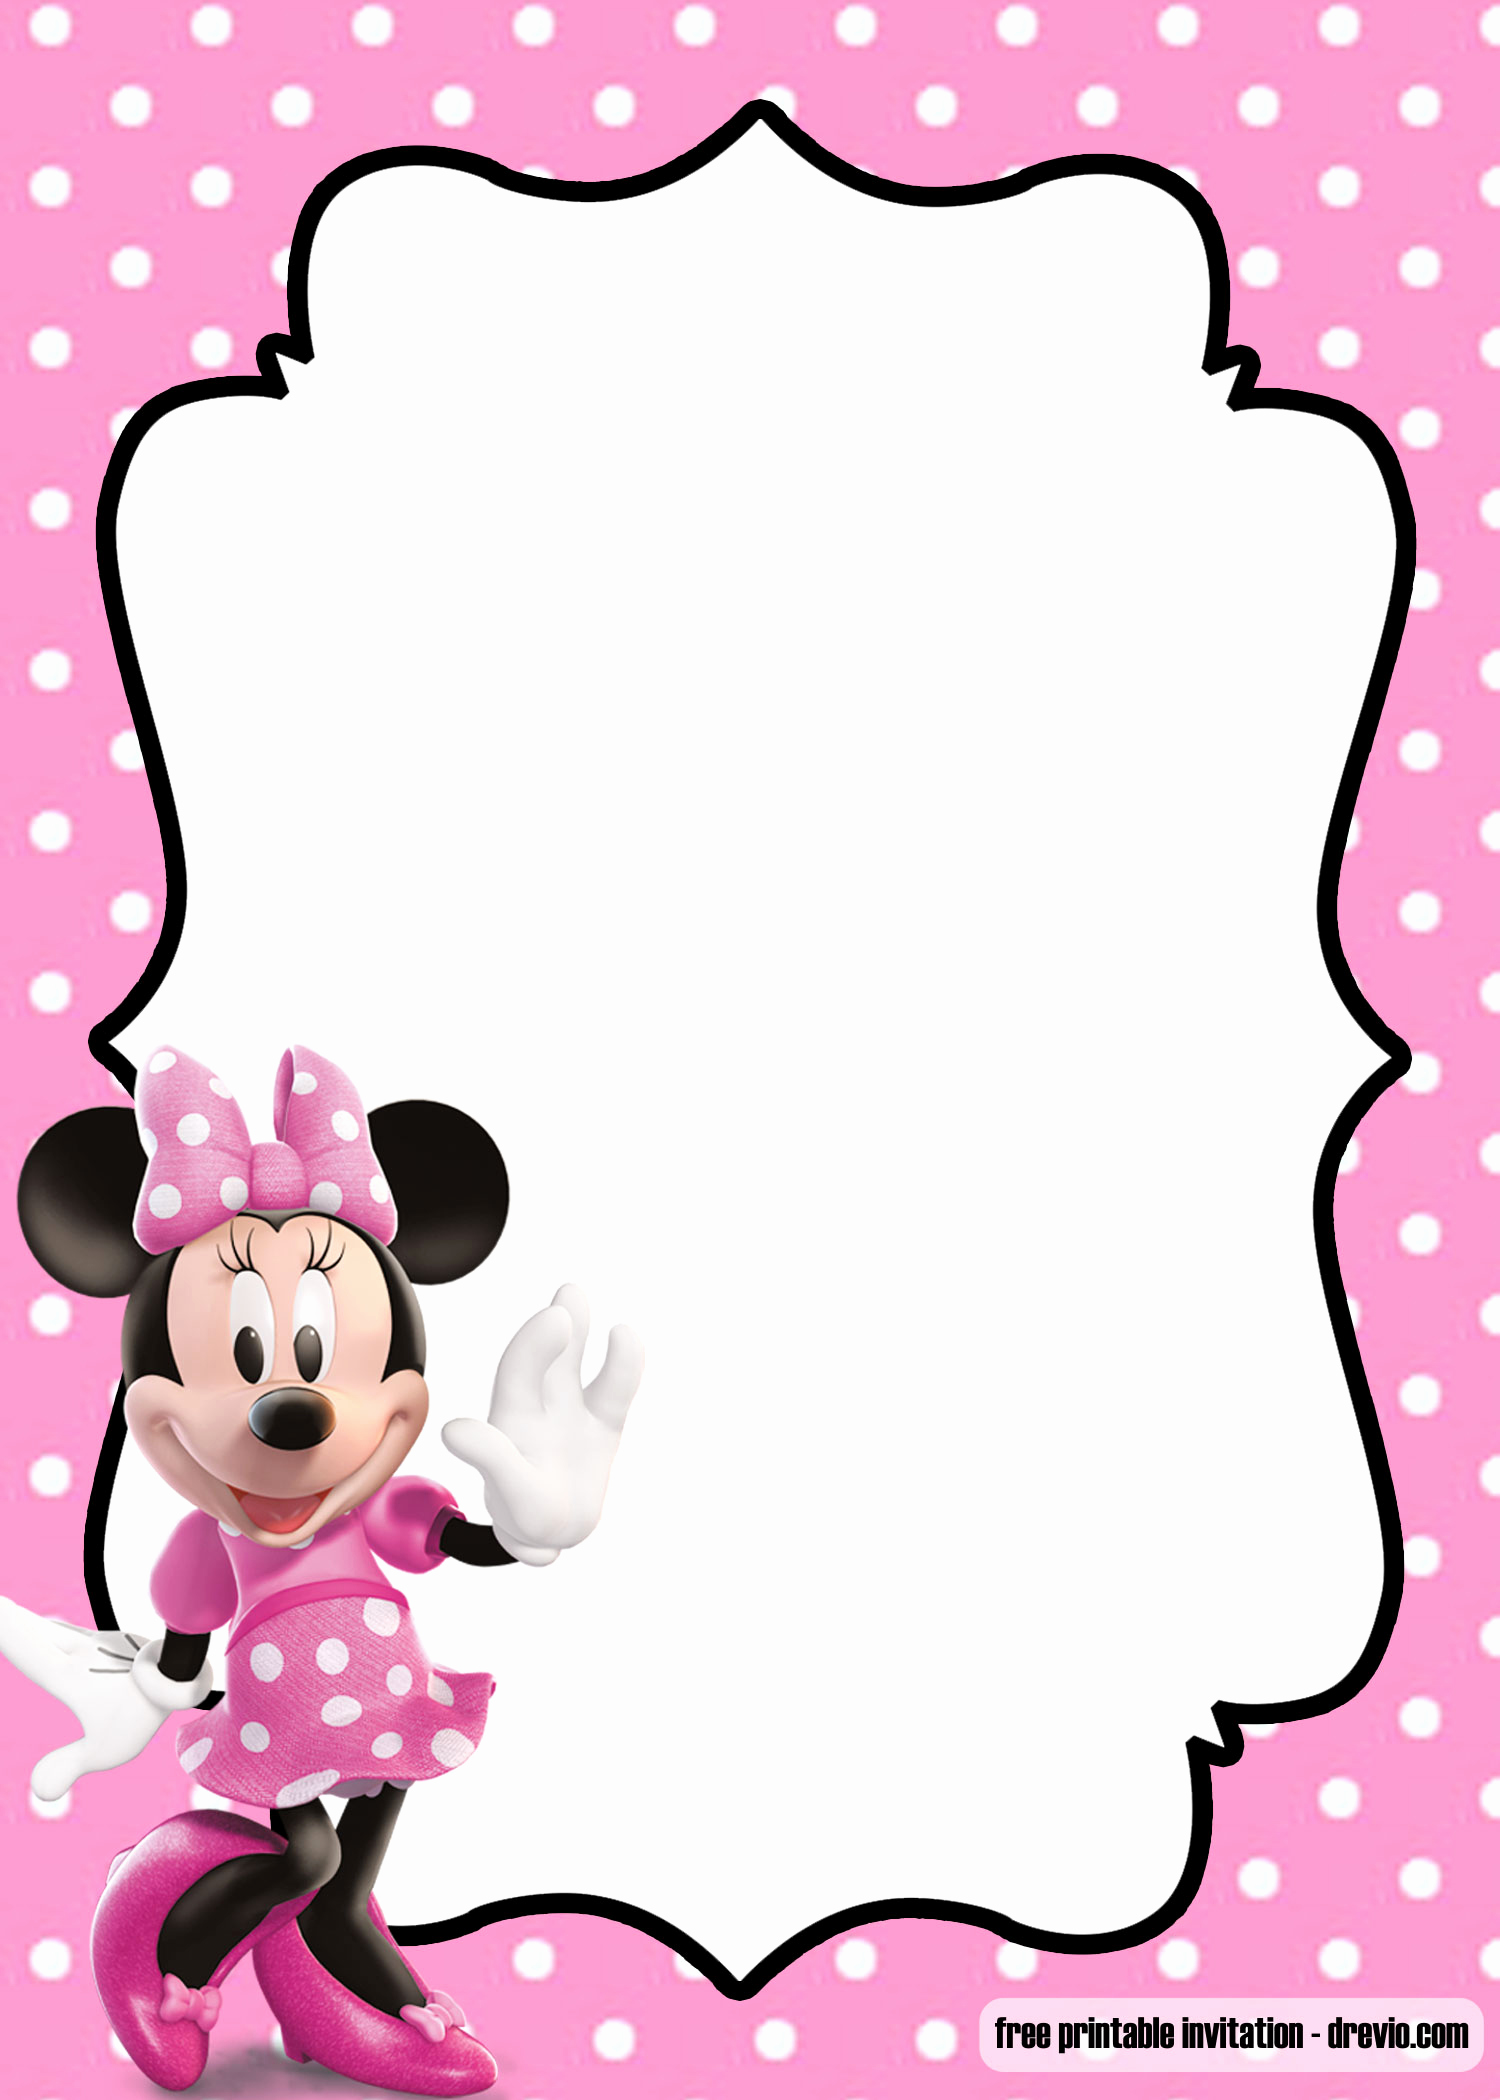 Minnie Mouse Invitation Template Free Best Of Free Polka Dot Pink Minnie Mouse Invitation Template